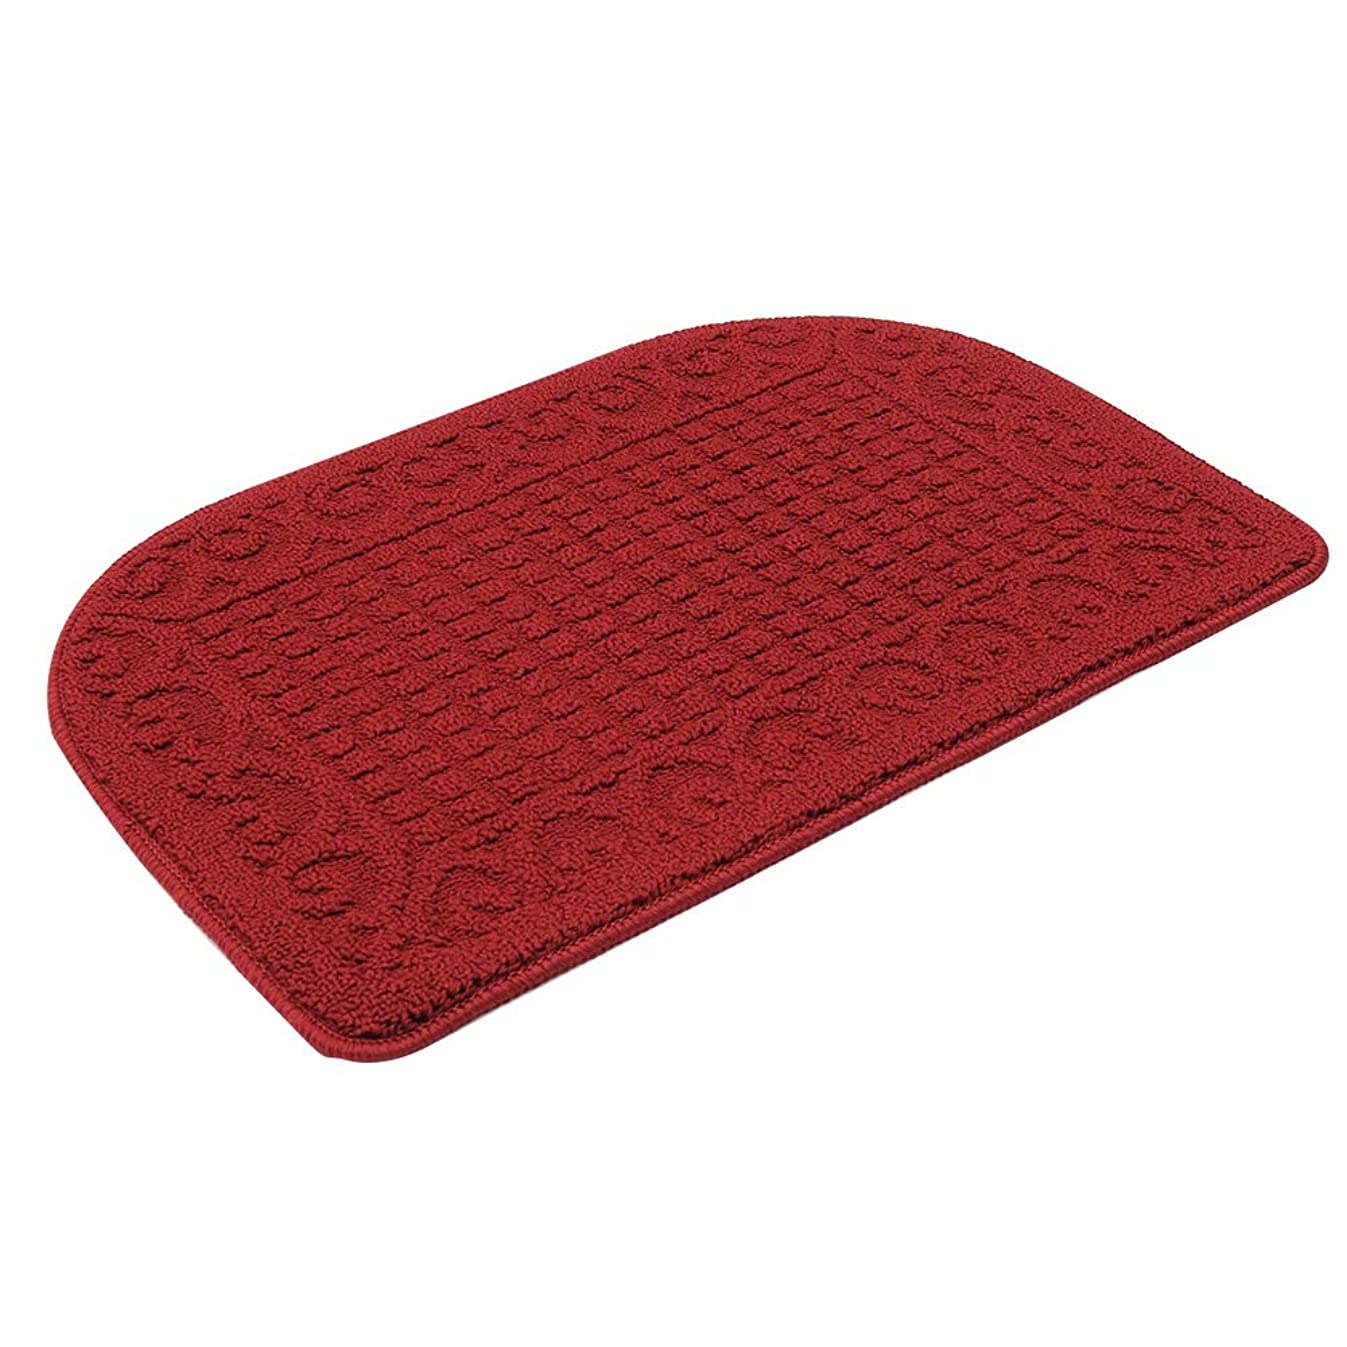 27X18 Inch Anti Fatigue Kitchen Rug Mats are Made of 100% Polypropylene Half Round Rug Cushion Specialized in Anti Slippery and Machine Washable,Red